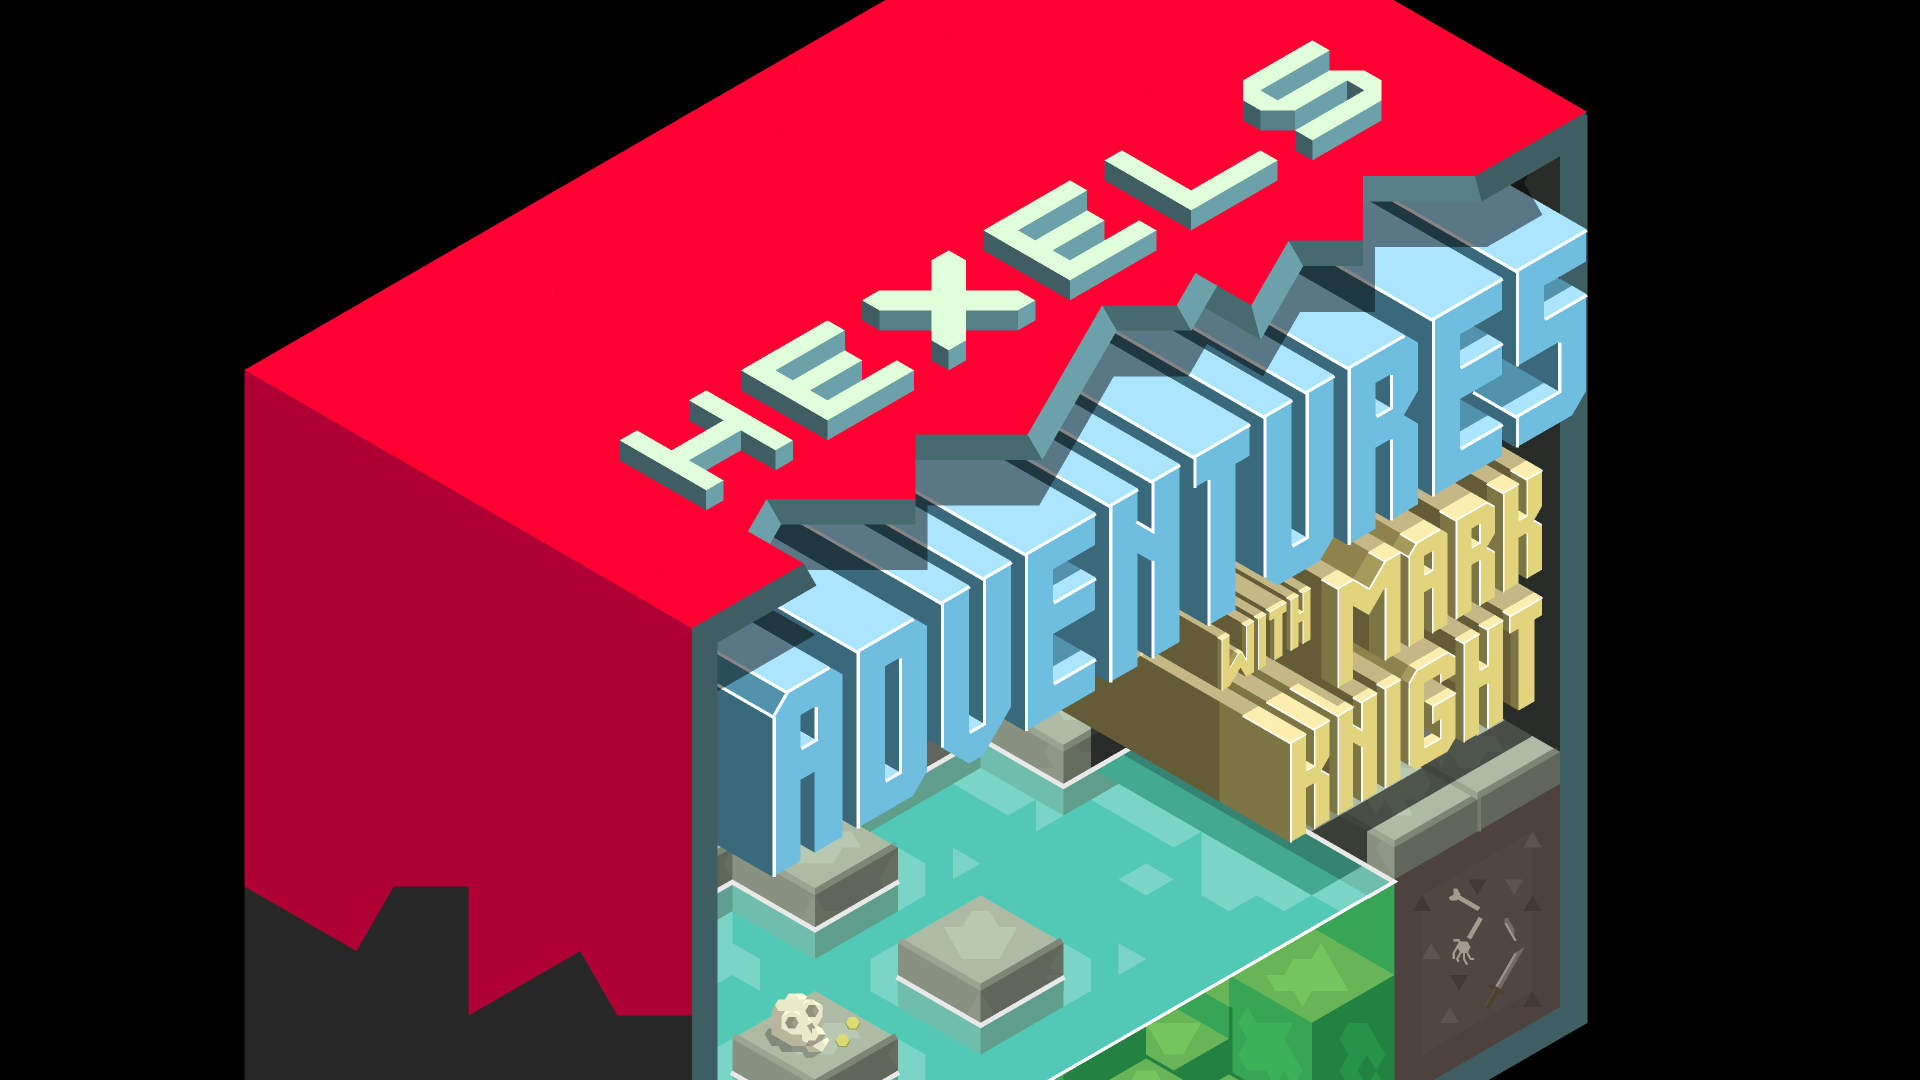 Hexels Adventures with Mark Knight